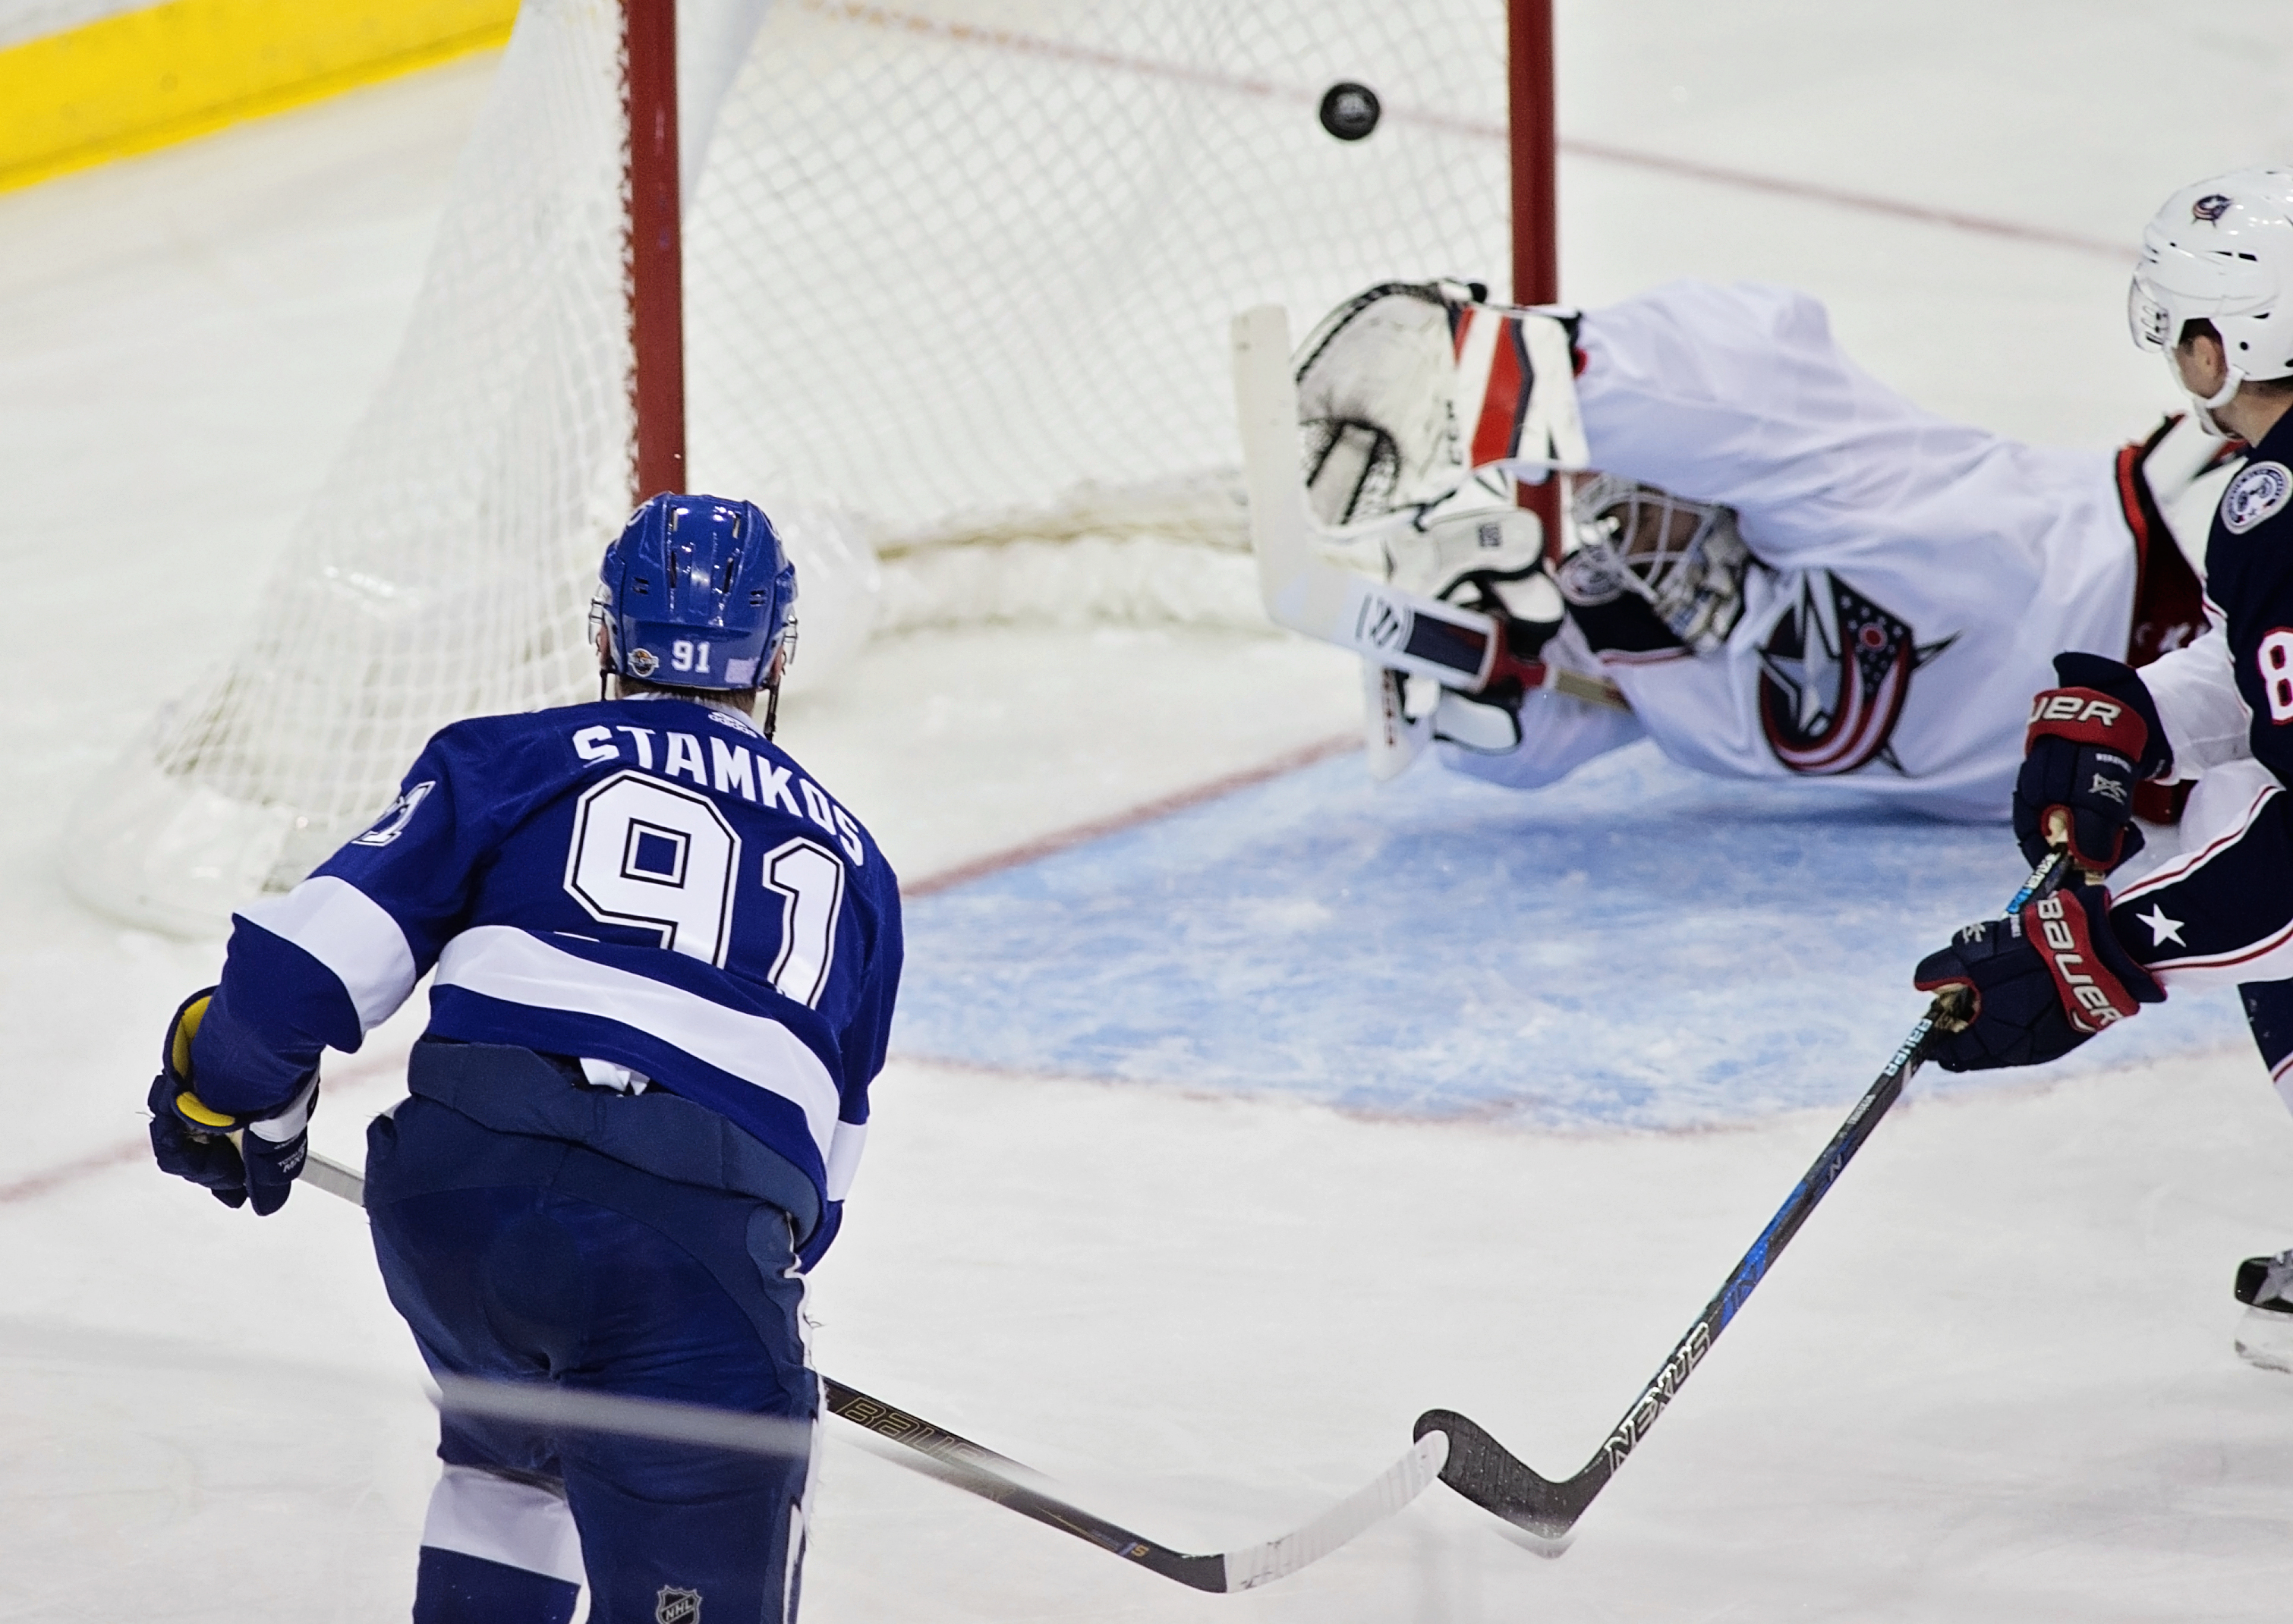 Stamkos scores to give Tampa Bay a lead./CARMEN MANDATO